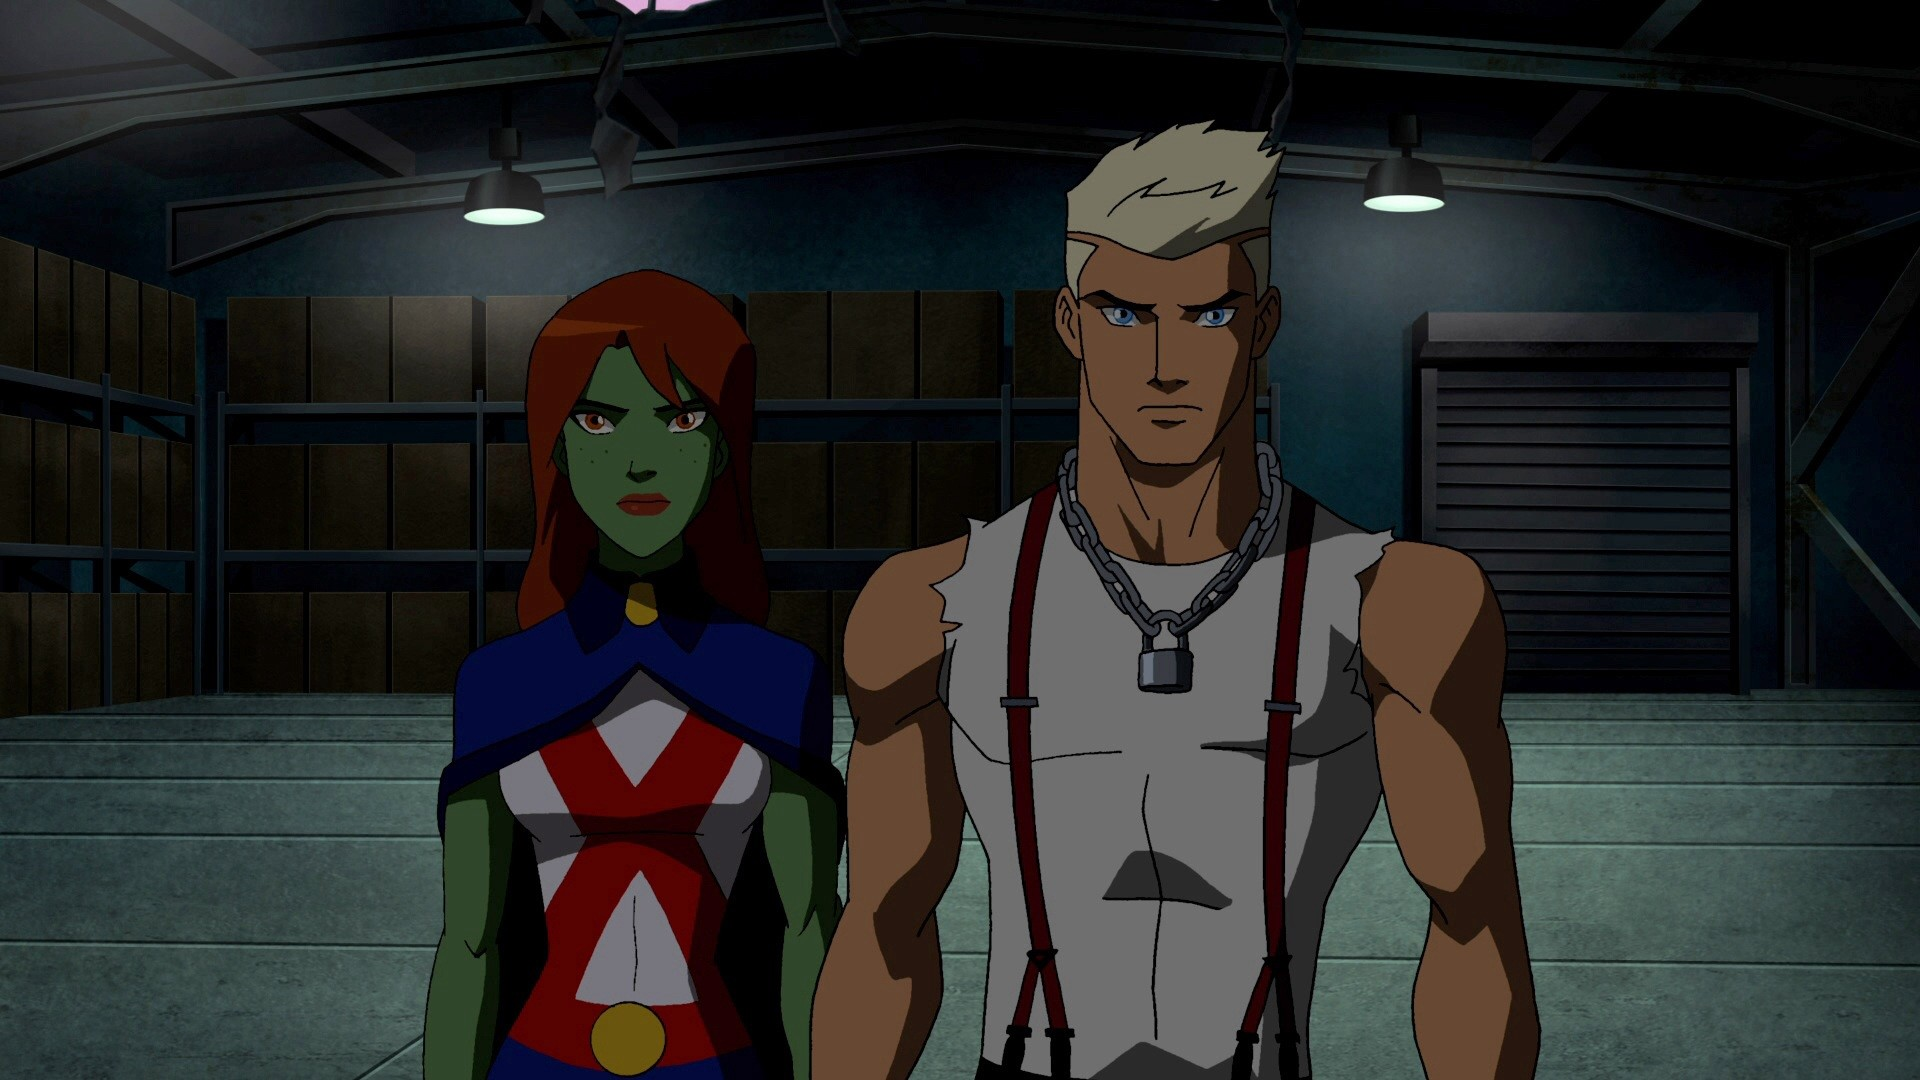 Miss Martian and Superboy getting ready to infiltrate Belle Reve